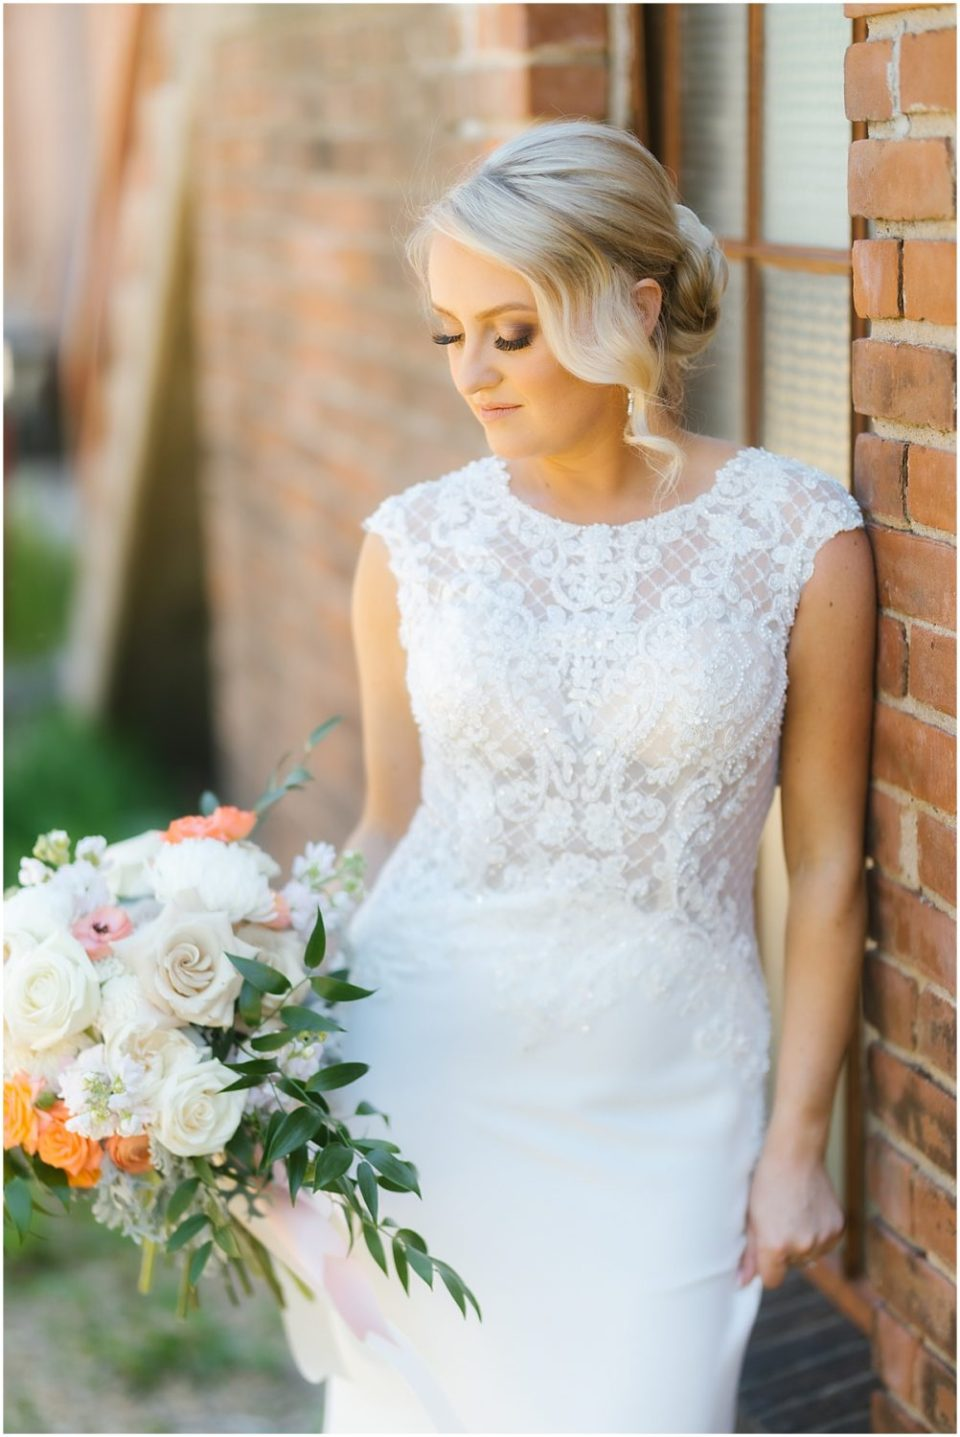 Bridal Portraits in Mori Lee The Wedding Shoppe Dress at The Capitol Room